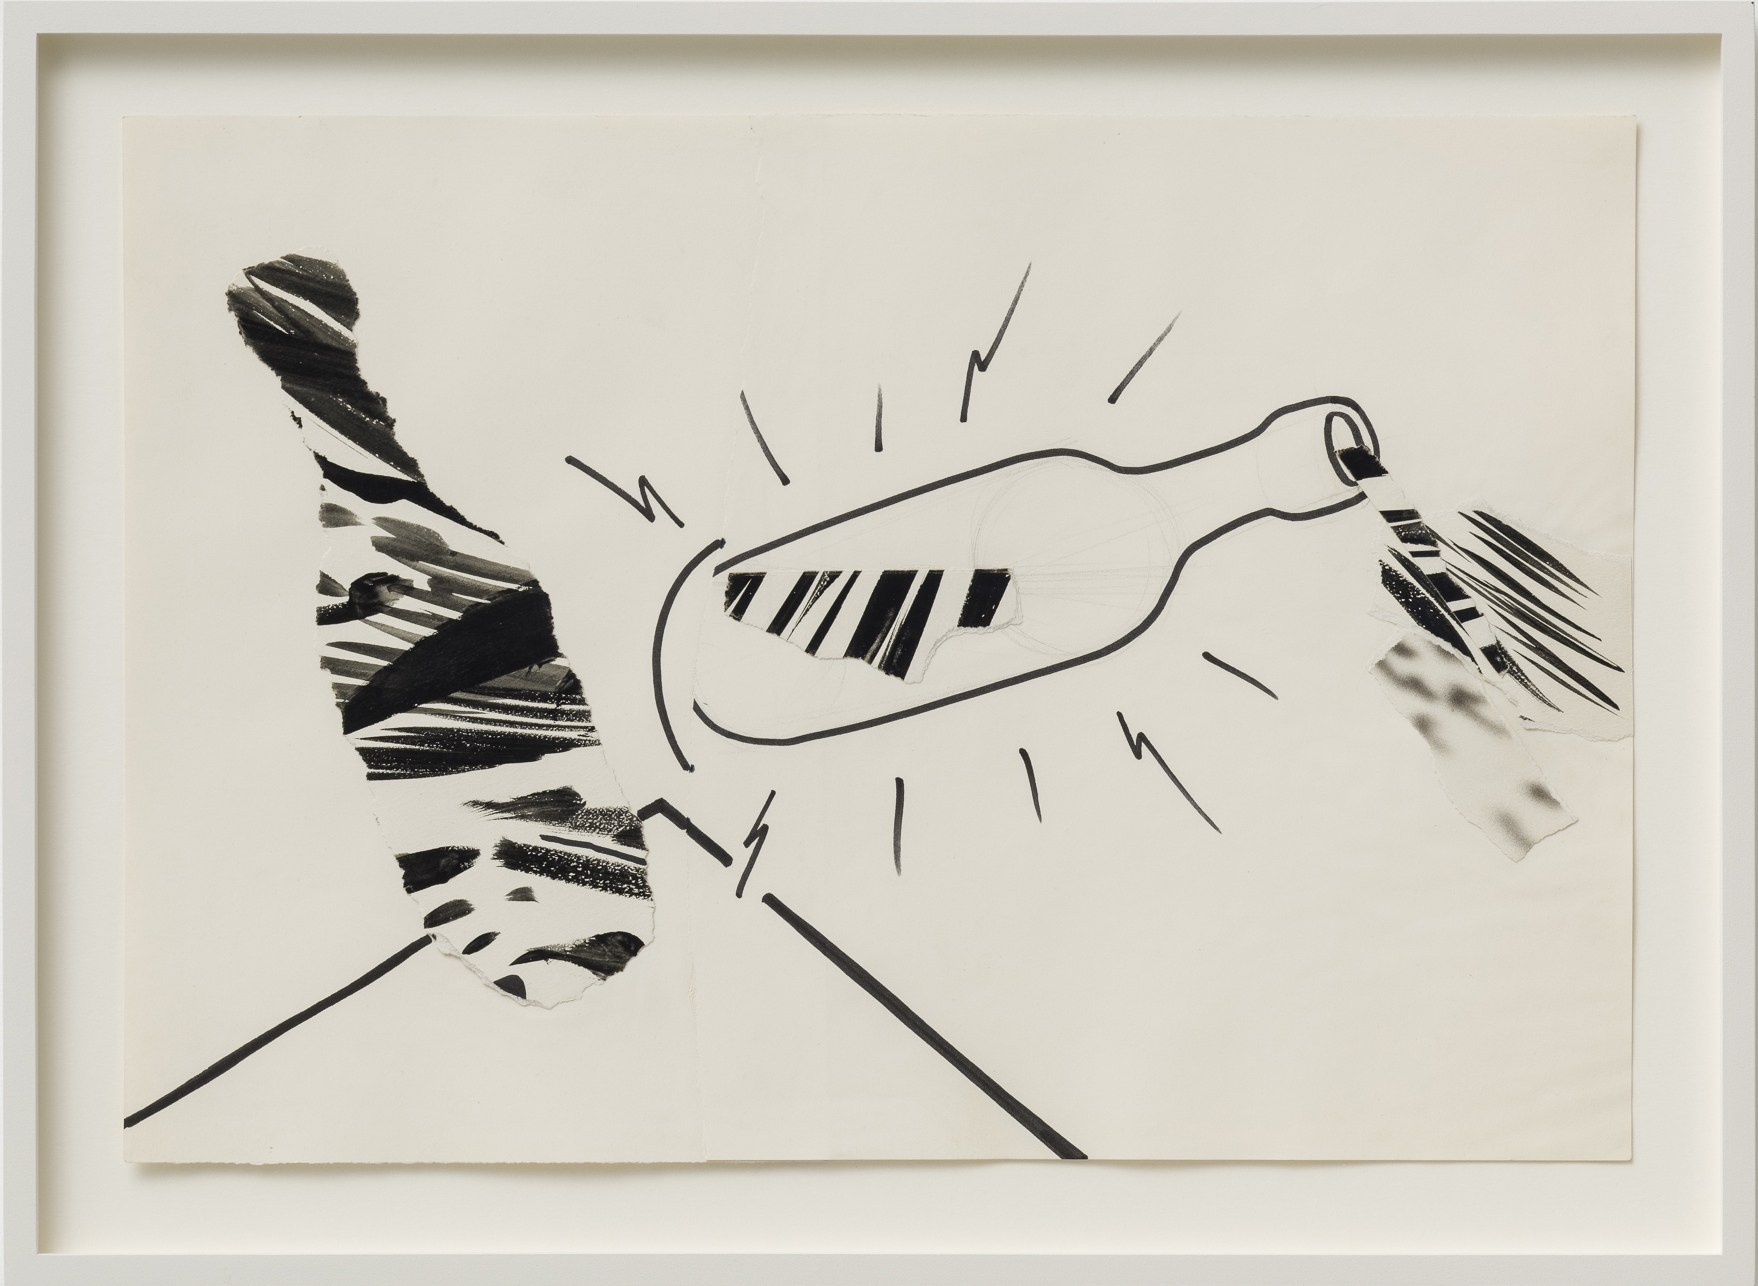 Ferenc Ficzek, Untitled, not dated, ink, paper collage, 31 x 45 cm. Photo: Marcus Schneider